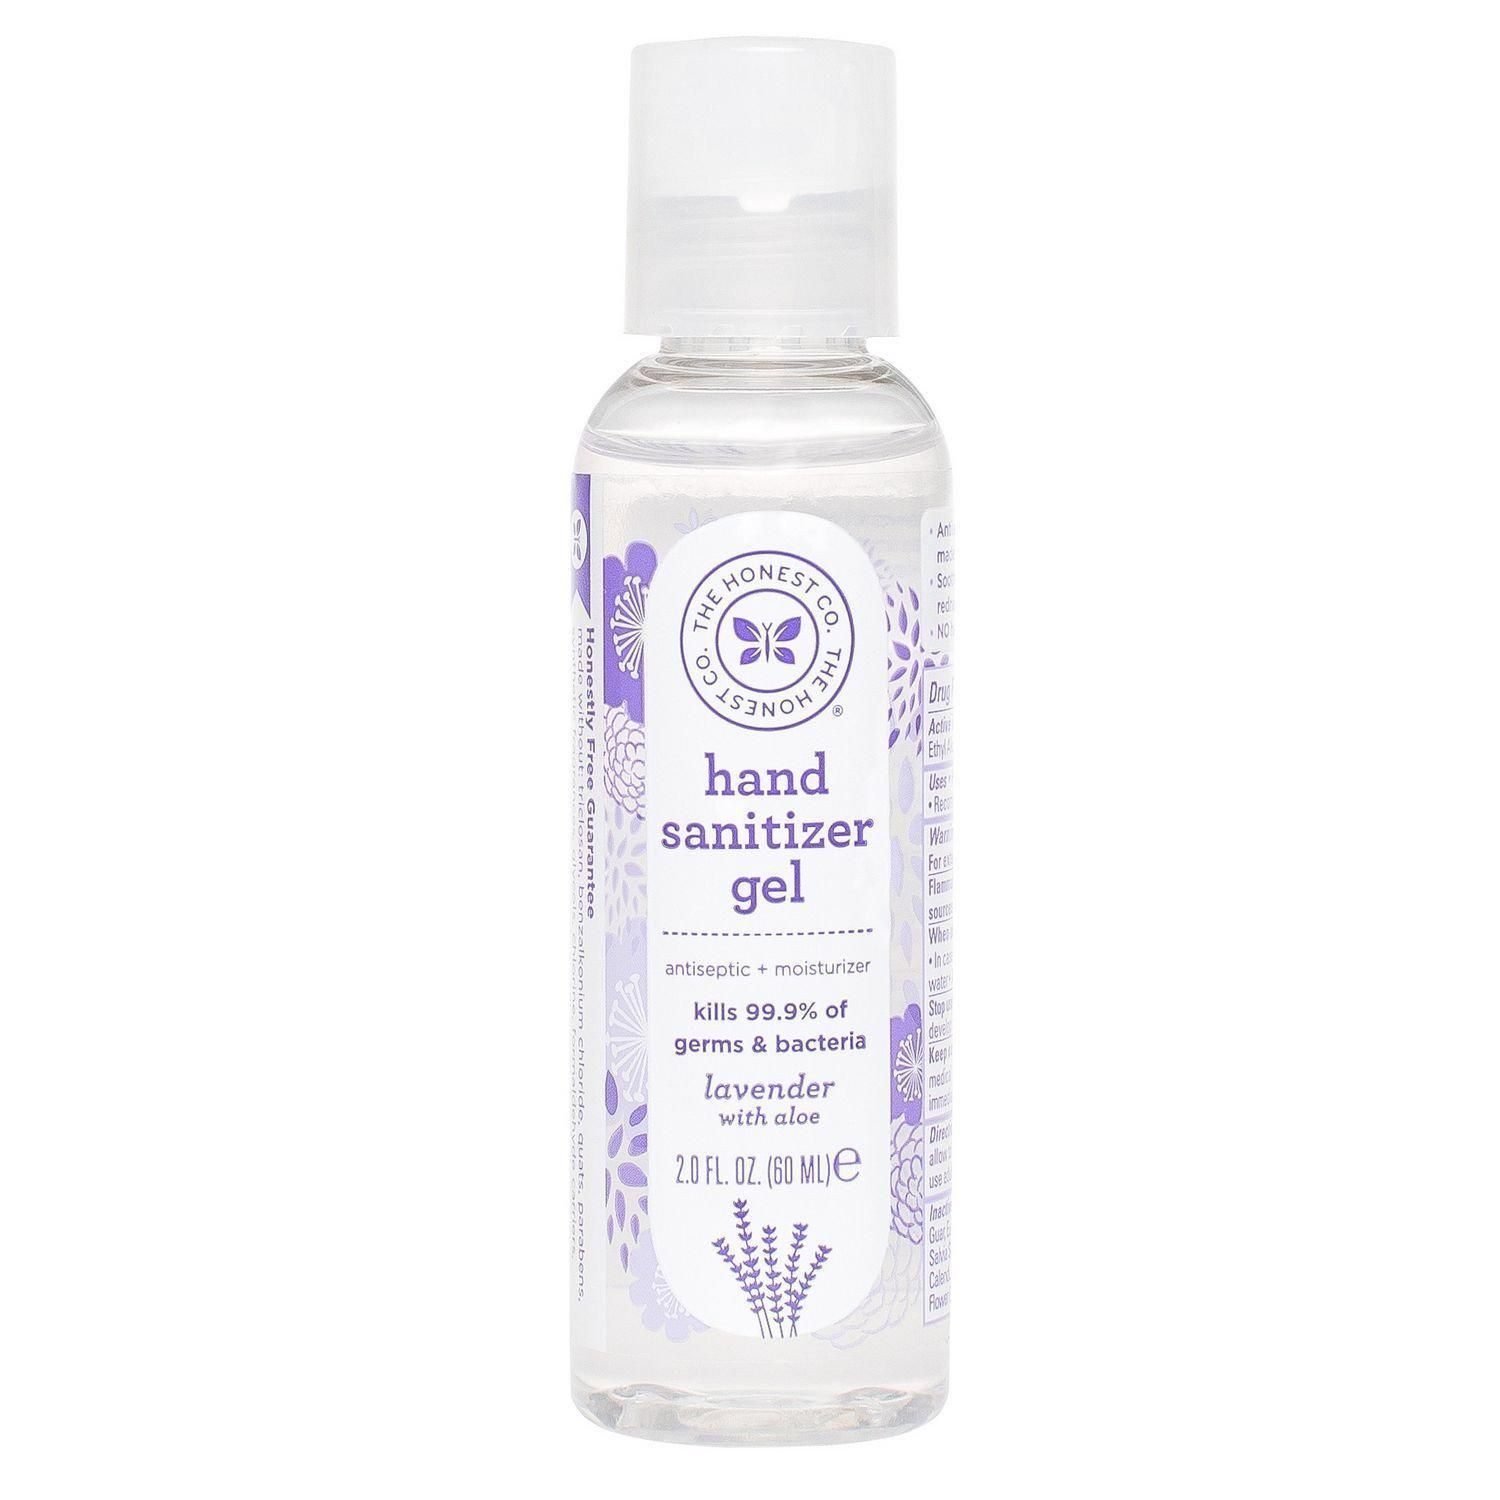 The Honest Company Honest Hand Sanitizer 2oz Lavender Hand